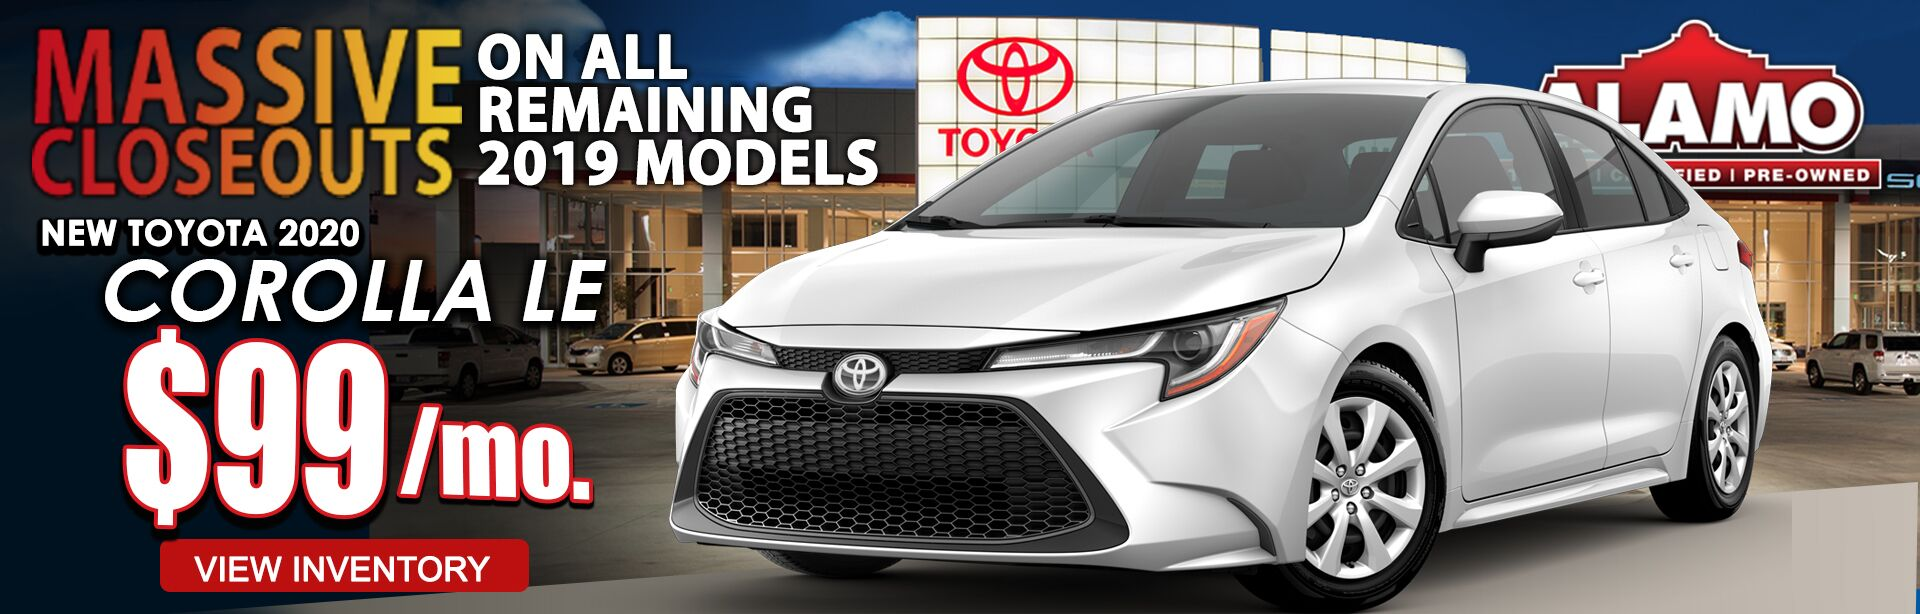 Toyota Official Site >> Toyota Dealership San Antonio Tx Used Cars Alamo Toyota